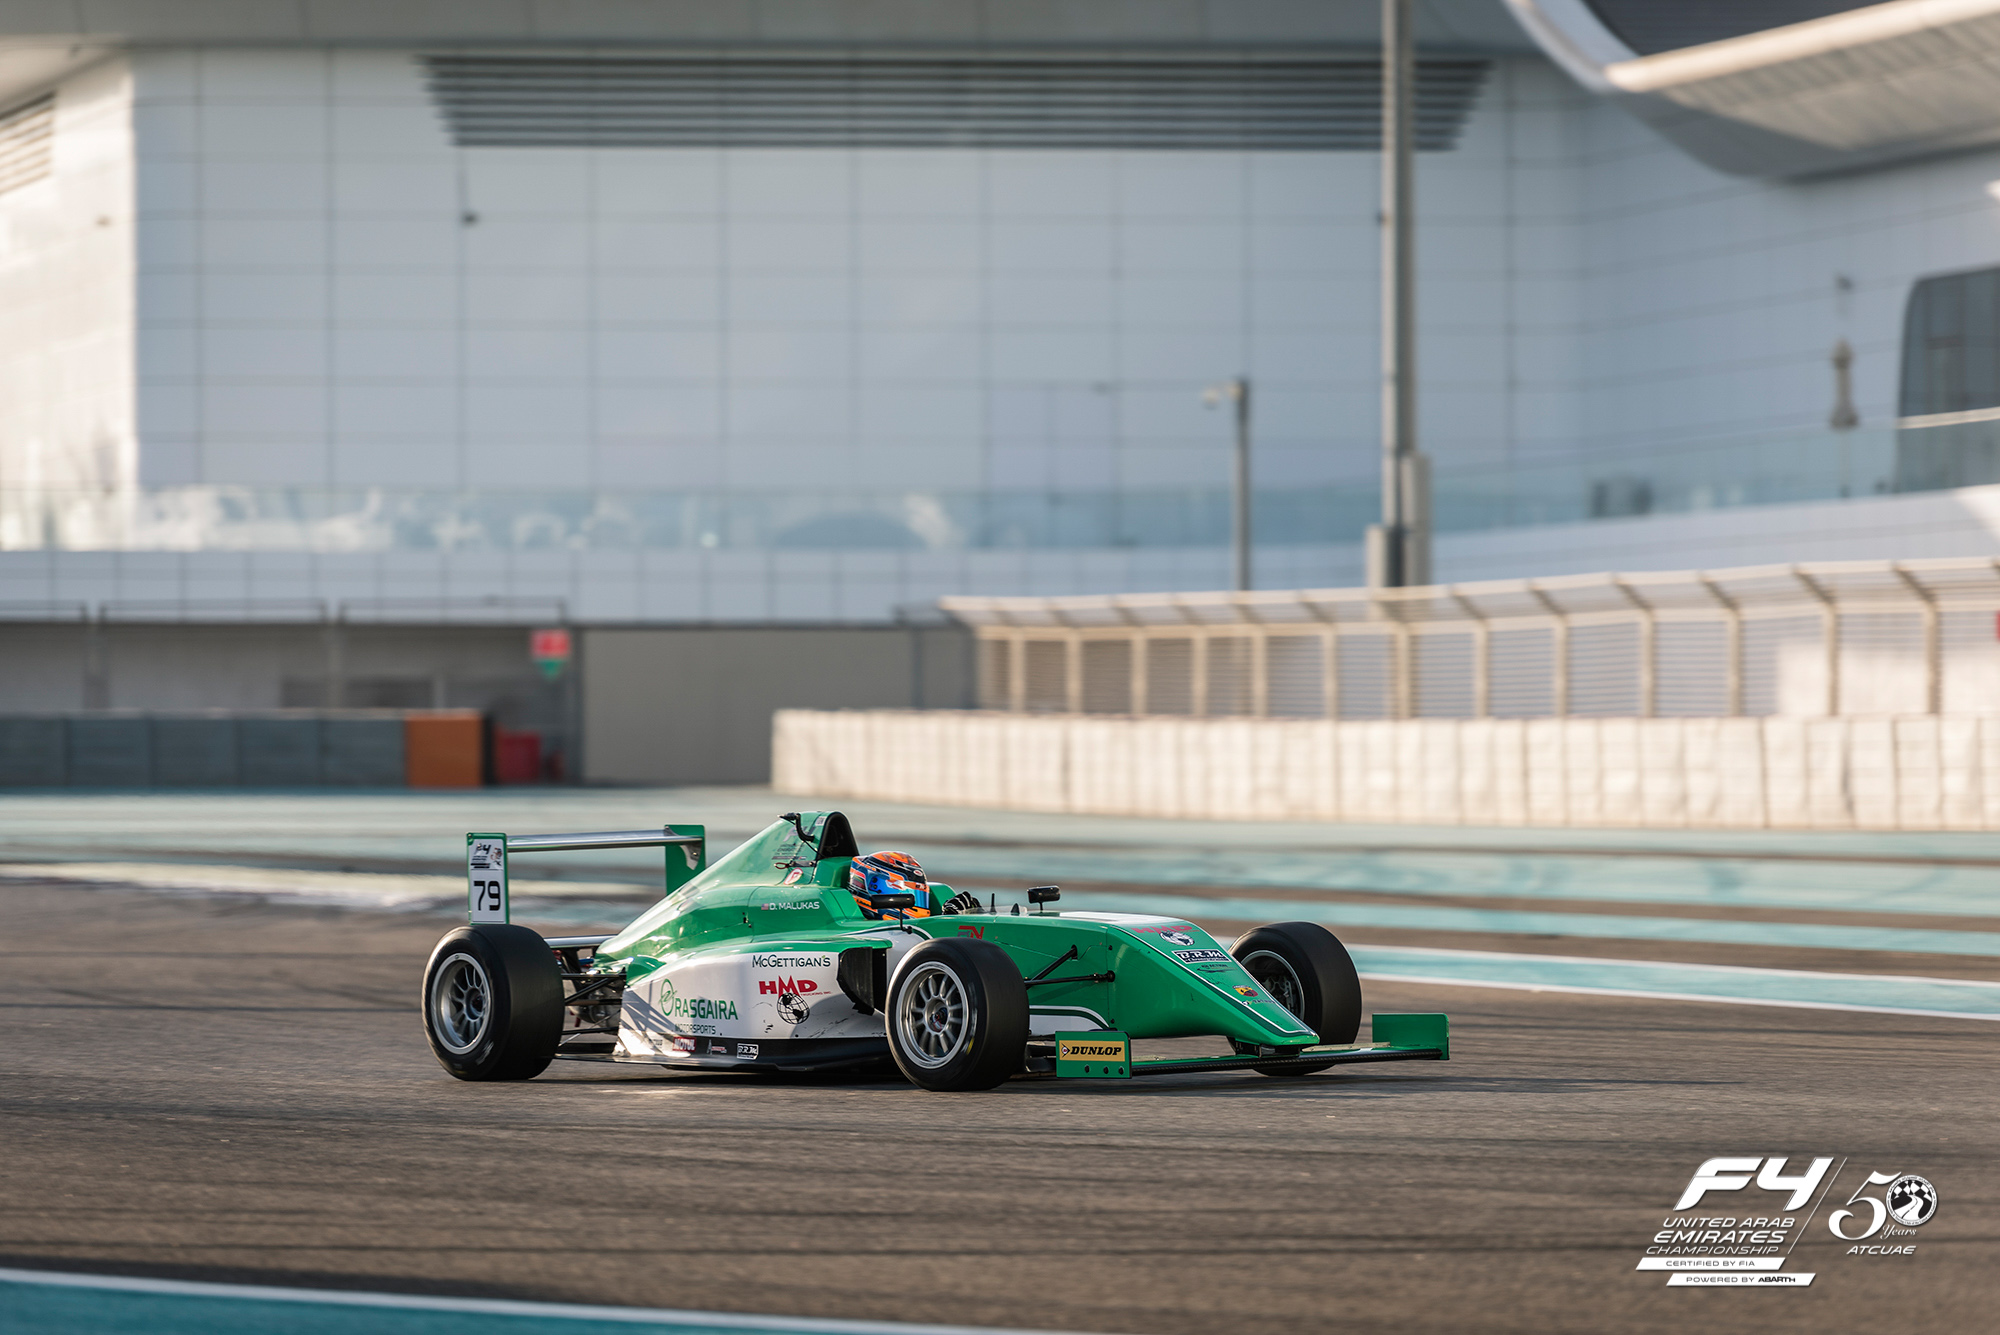 2016 12 18   F4 Second Roud   Abu Dhabi 37 Of 39